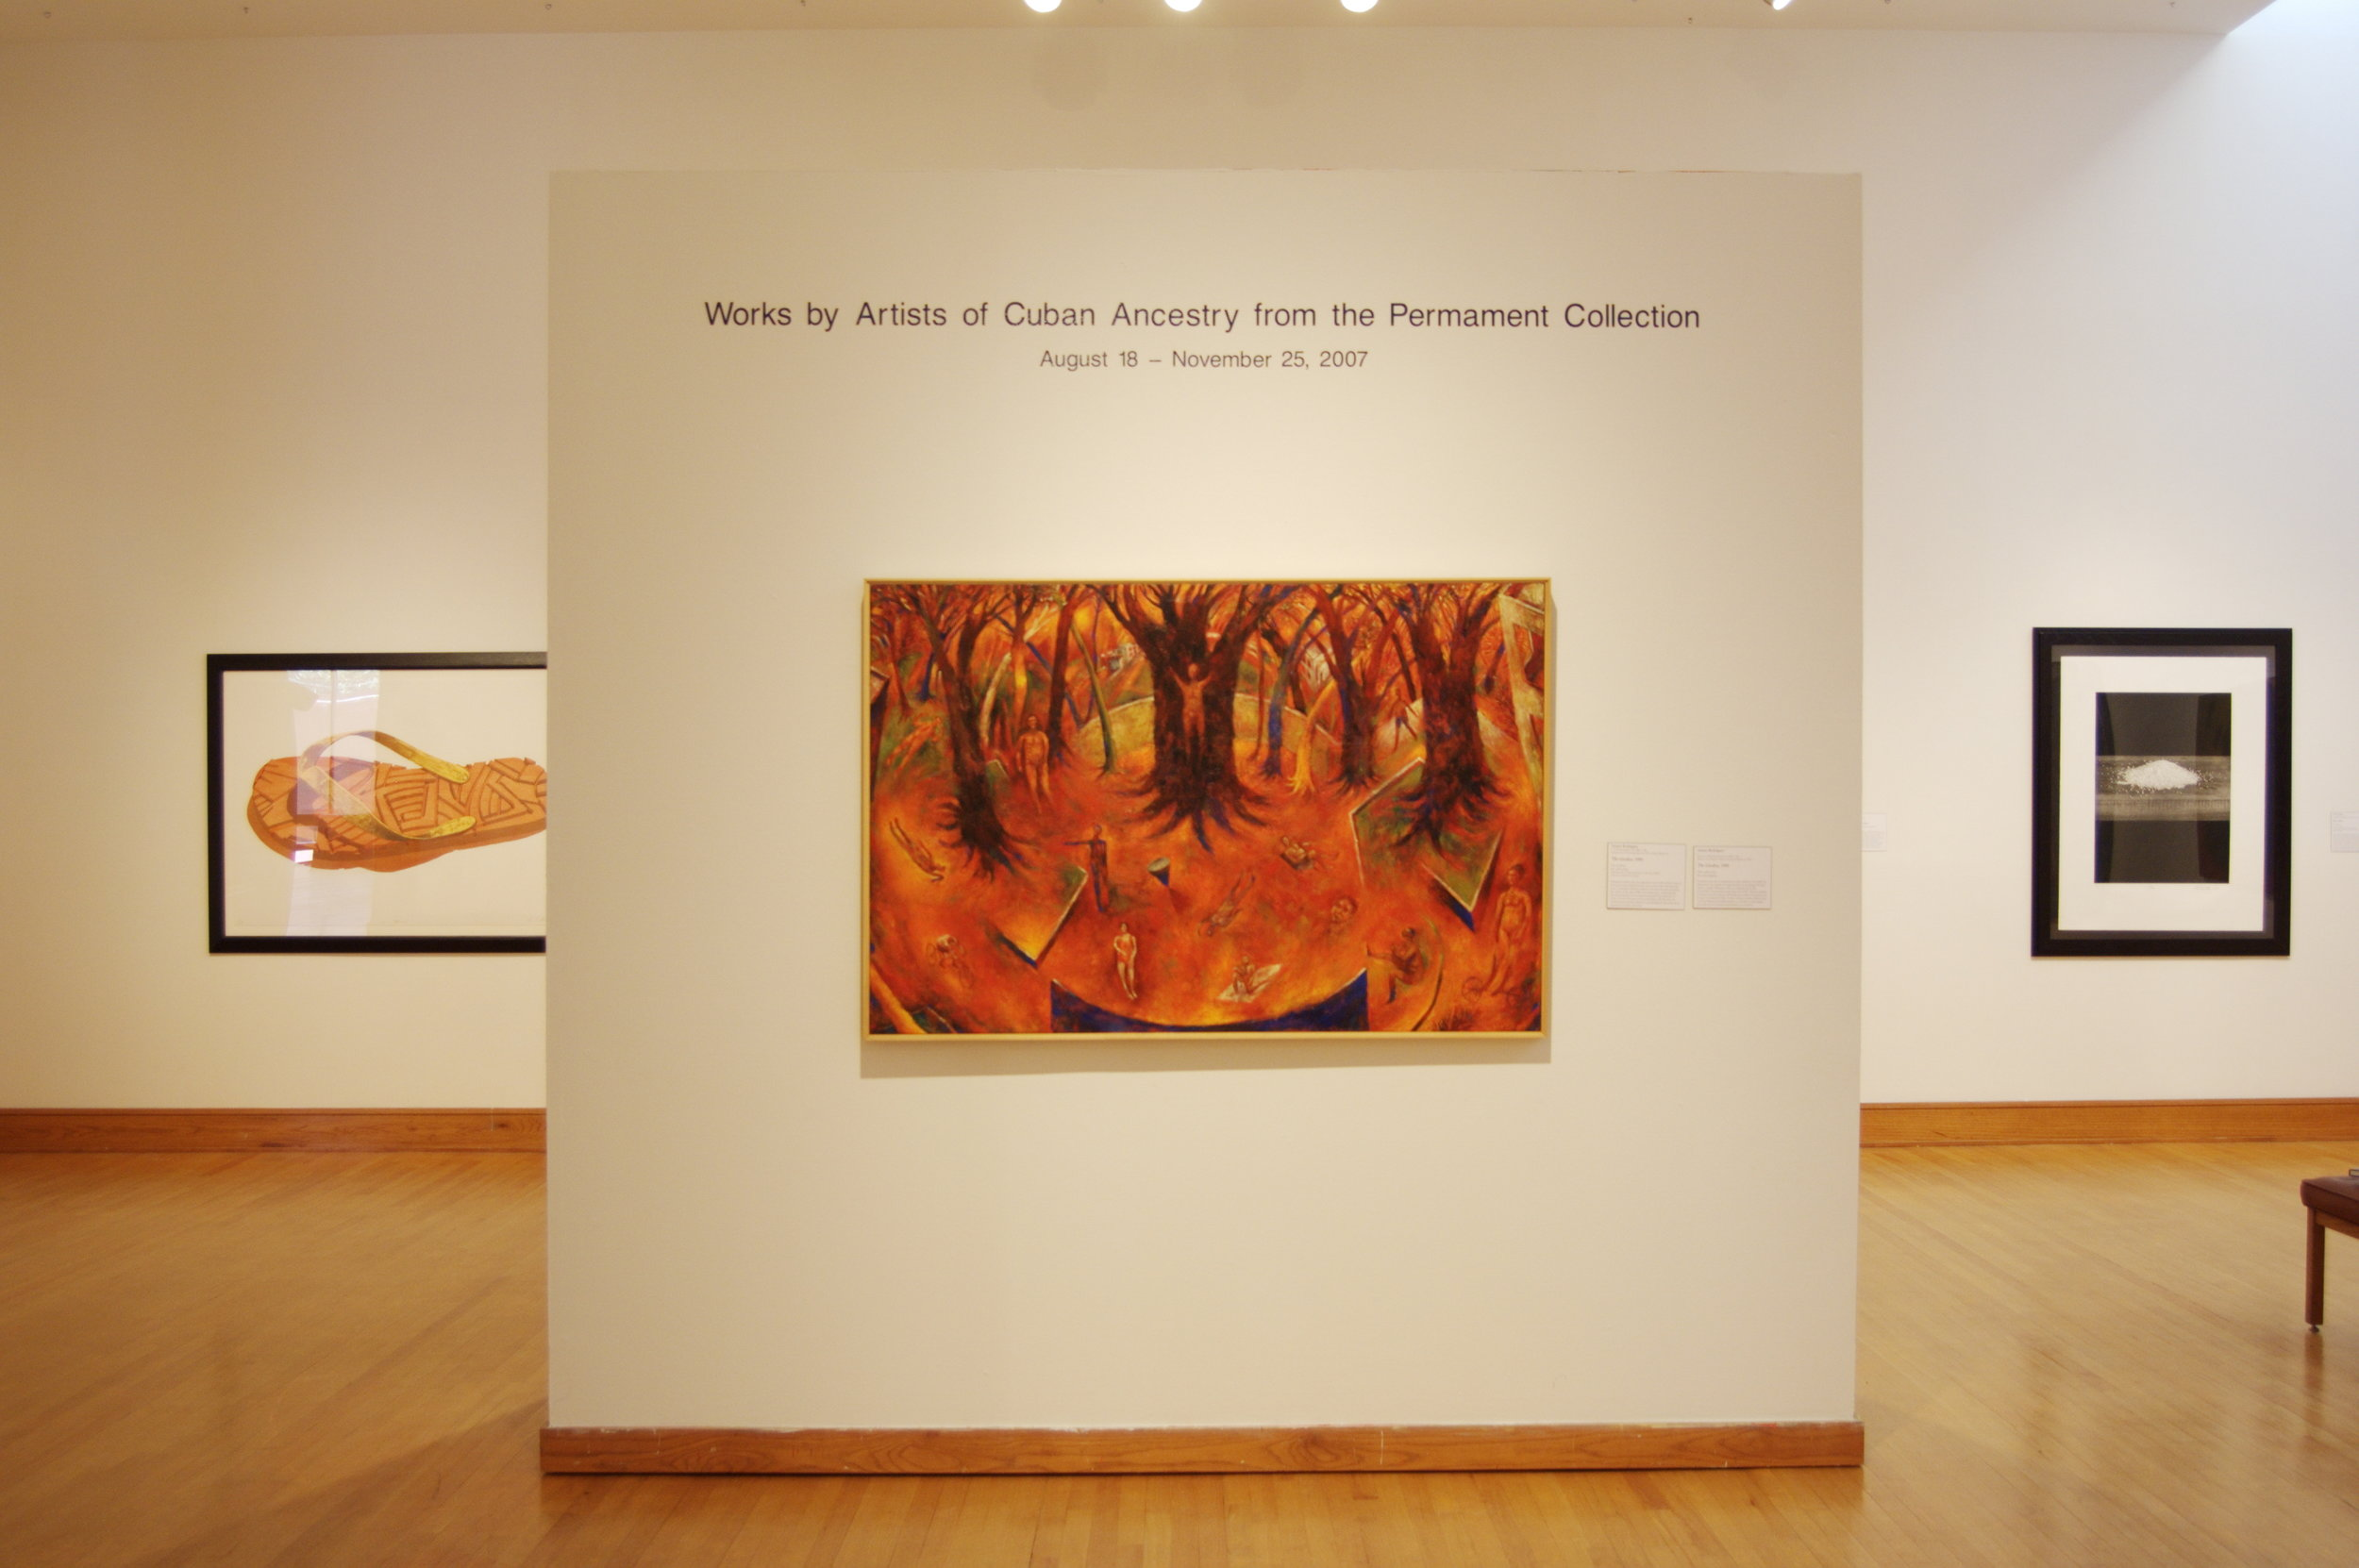 Works by Artists of Cuban Ancestry From the Permanent Collection, 2008.